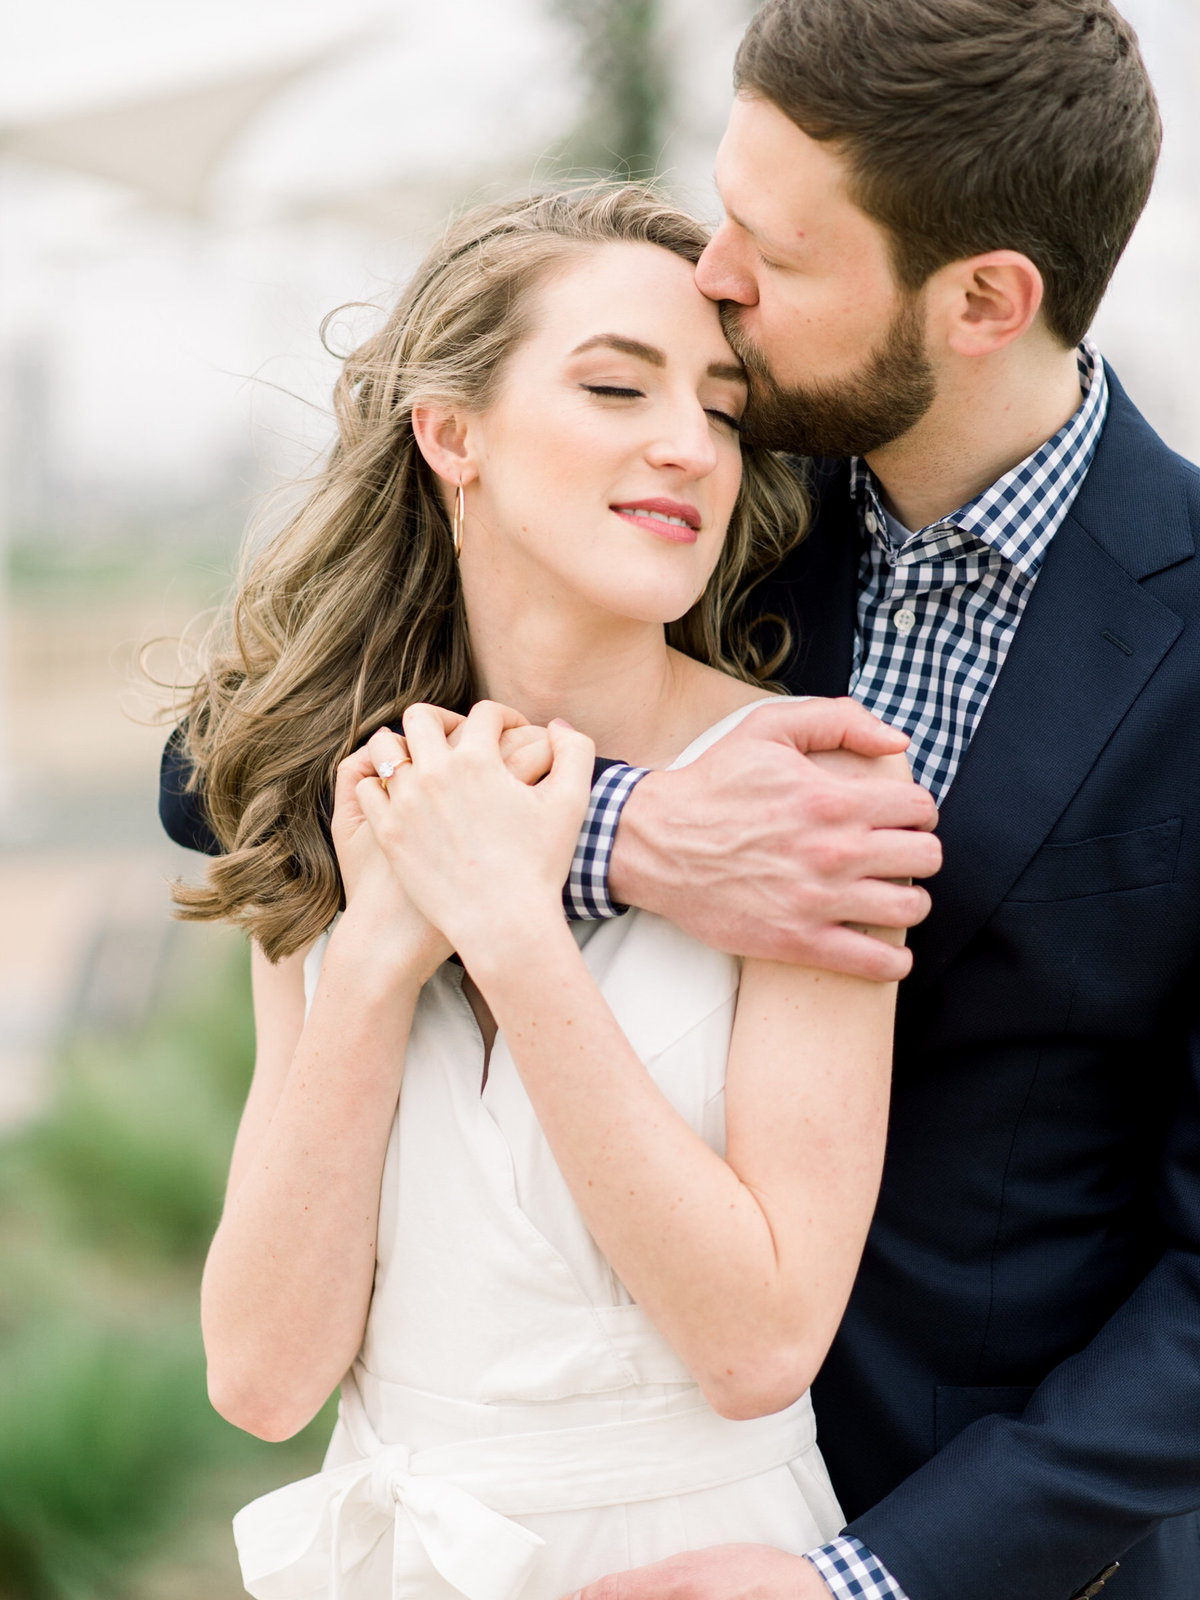 Courtney Hanson Photography - Dallas Spring Engagement Photos at Dallas Arboretum-2918